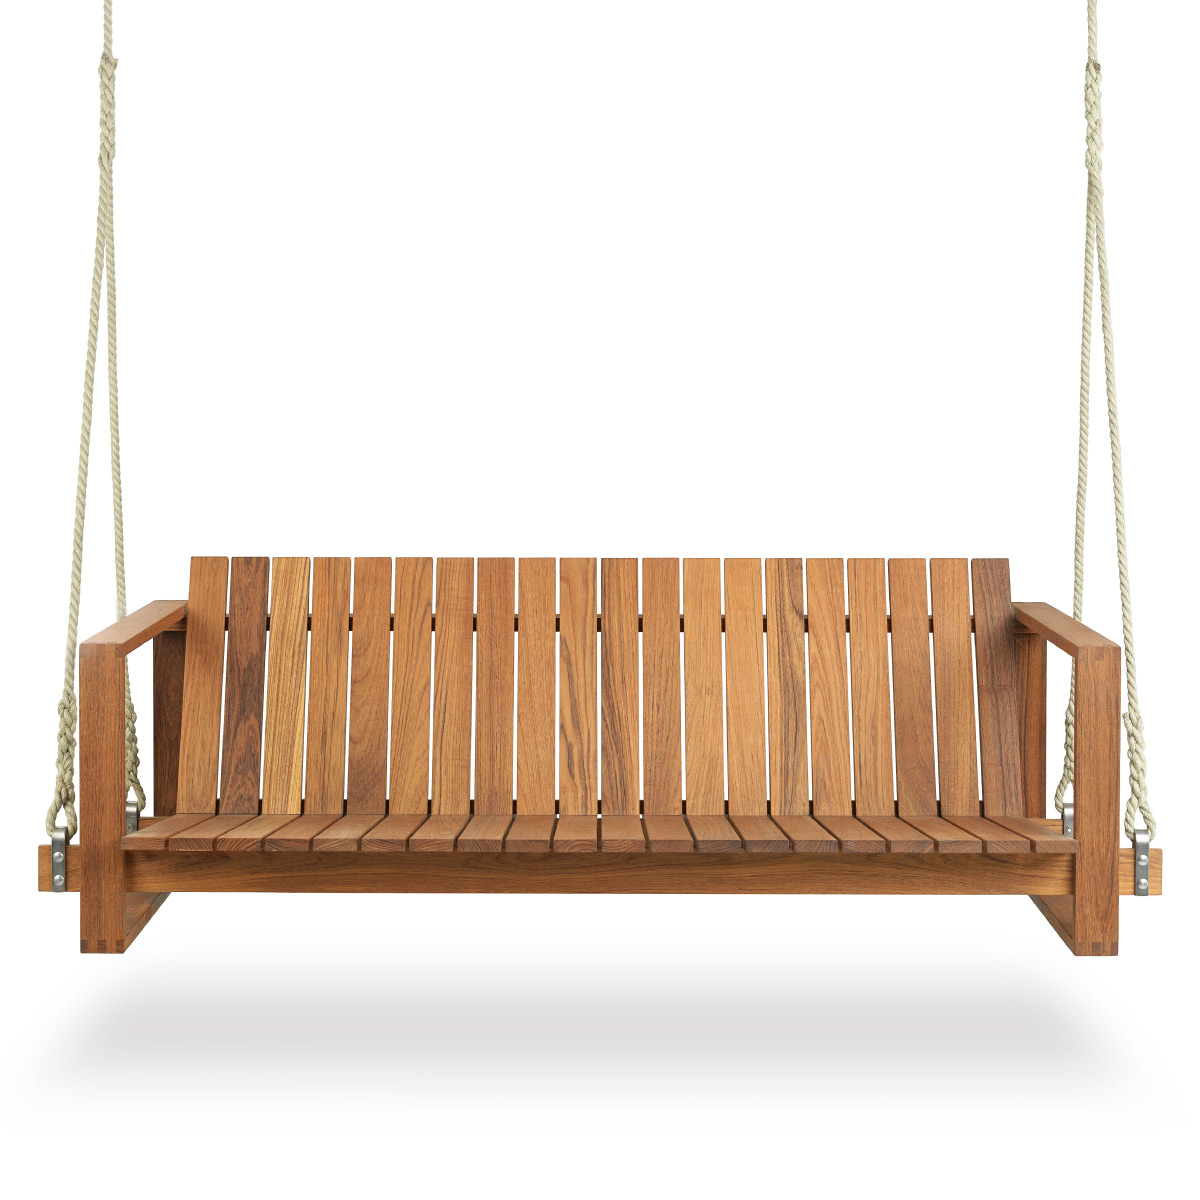 Well Known Carl Hansen And Son Bk13 Swing Sofa, Teak Oil Intended For 2 Person Light Teak Oil Wood Outdoor Swings (Gallery 6 of 30)